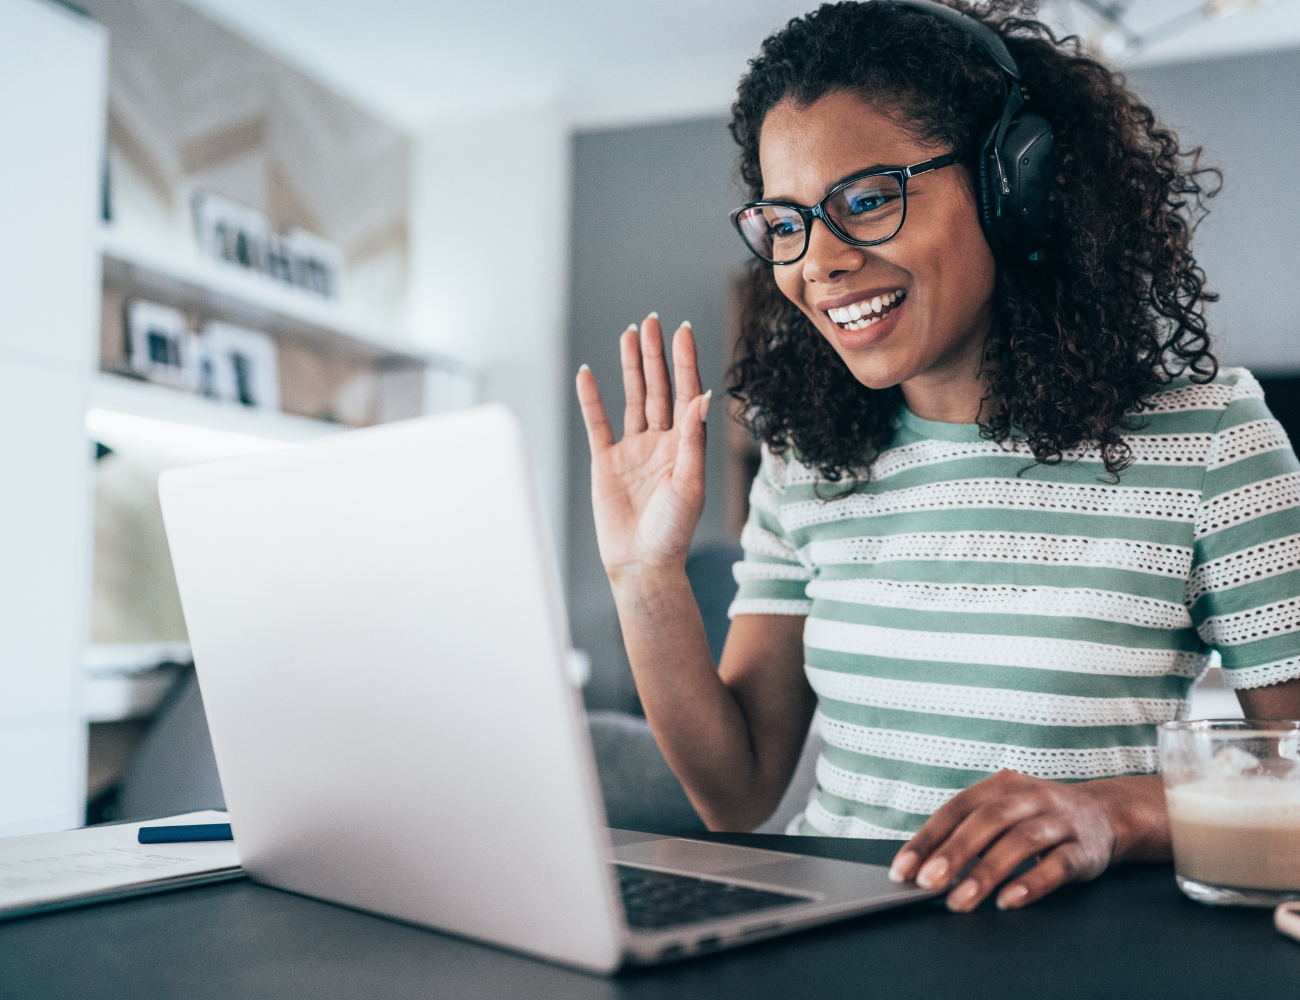 Virtual Onboarding: 7 Tips for Welcoming Remote Employees